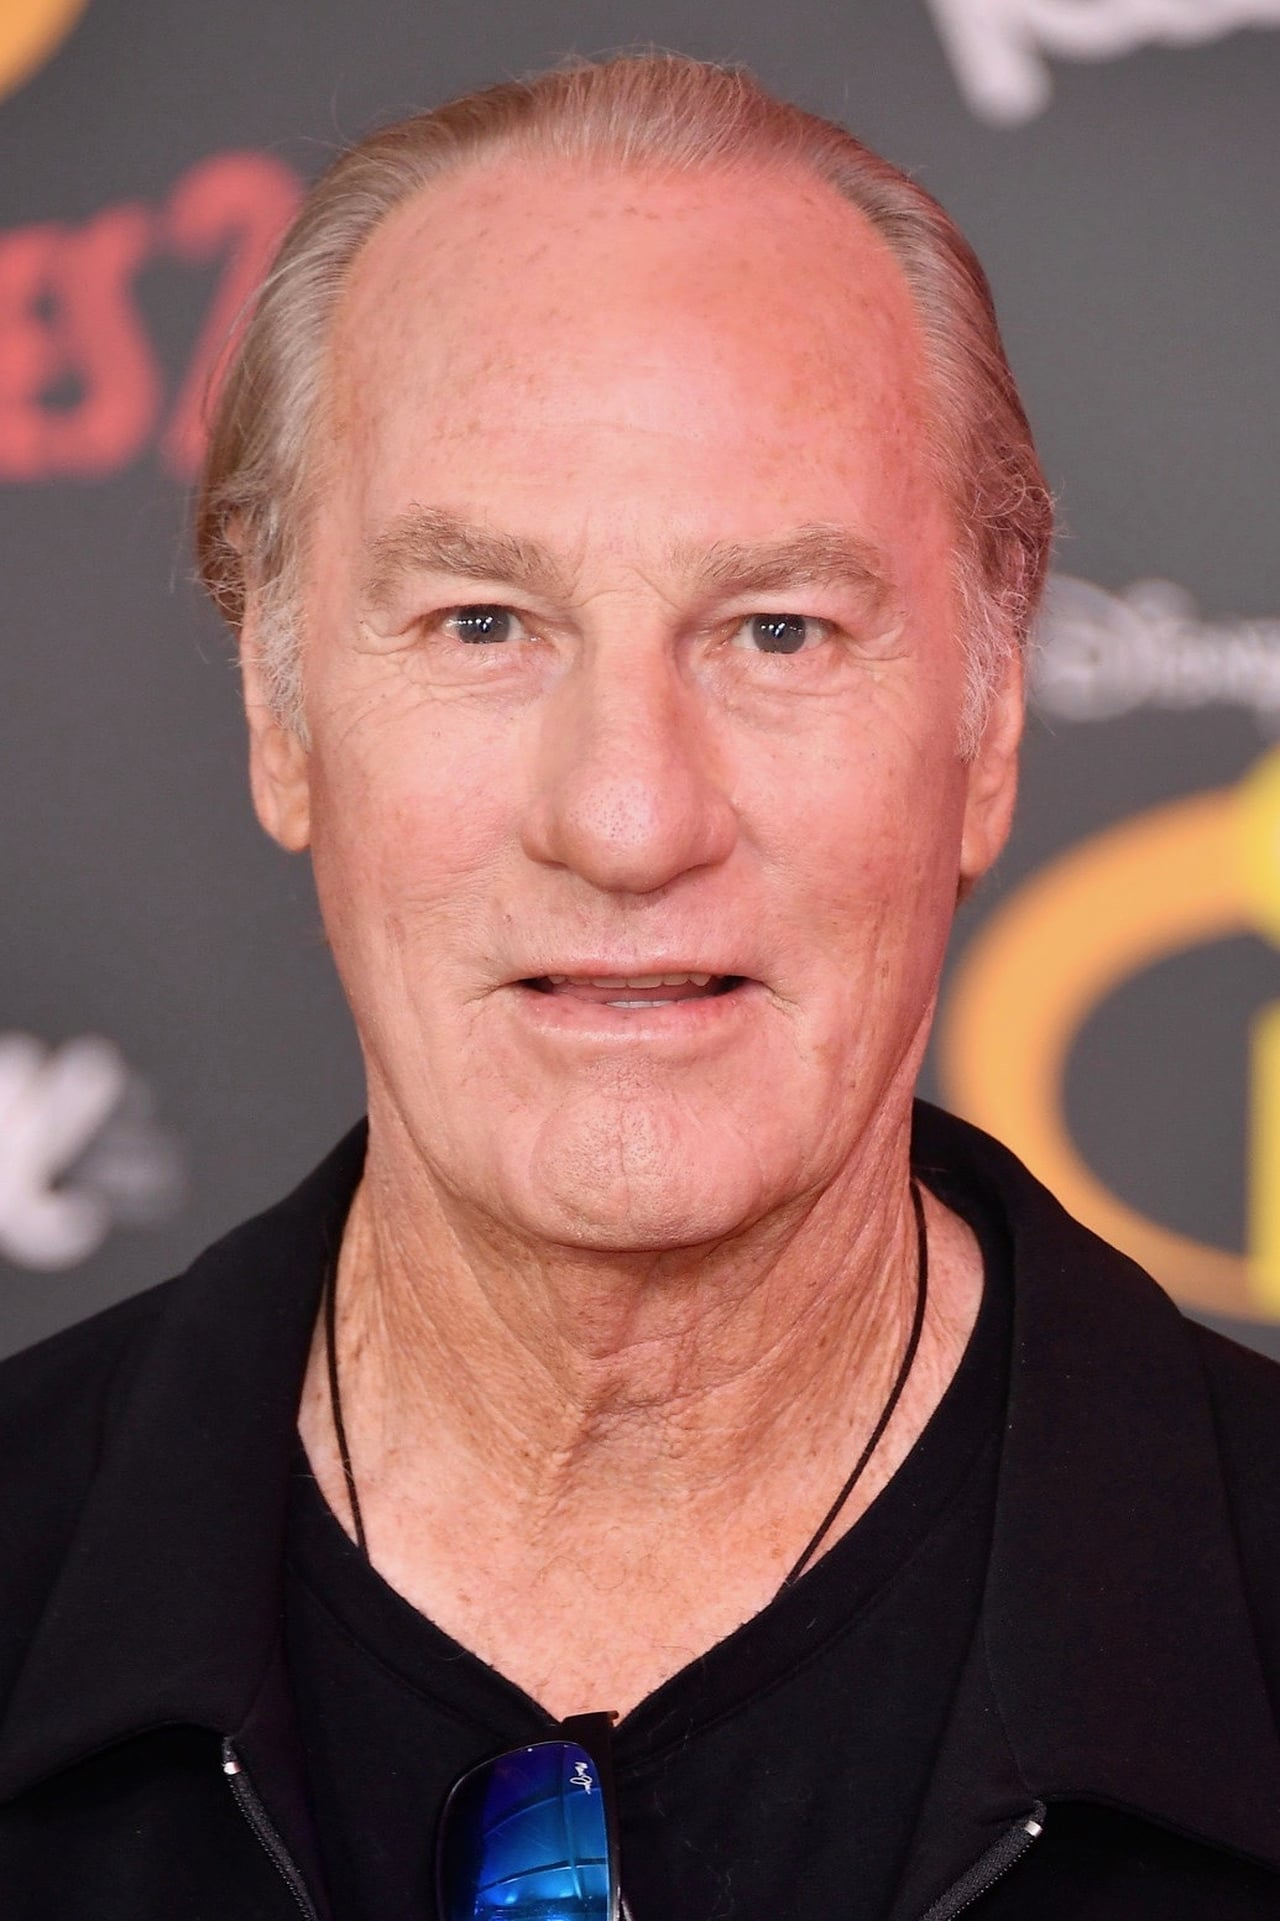 Craig T. Nelson isBob Parr / Mr. Incredible (voice)